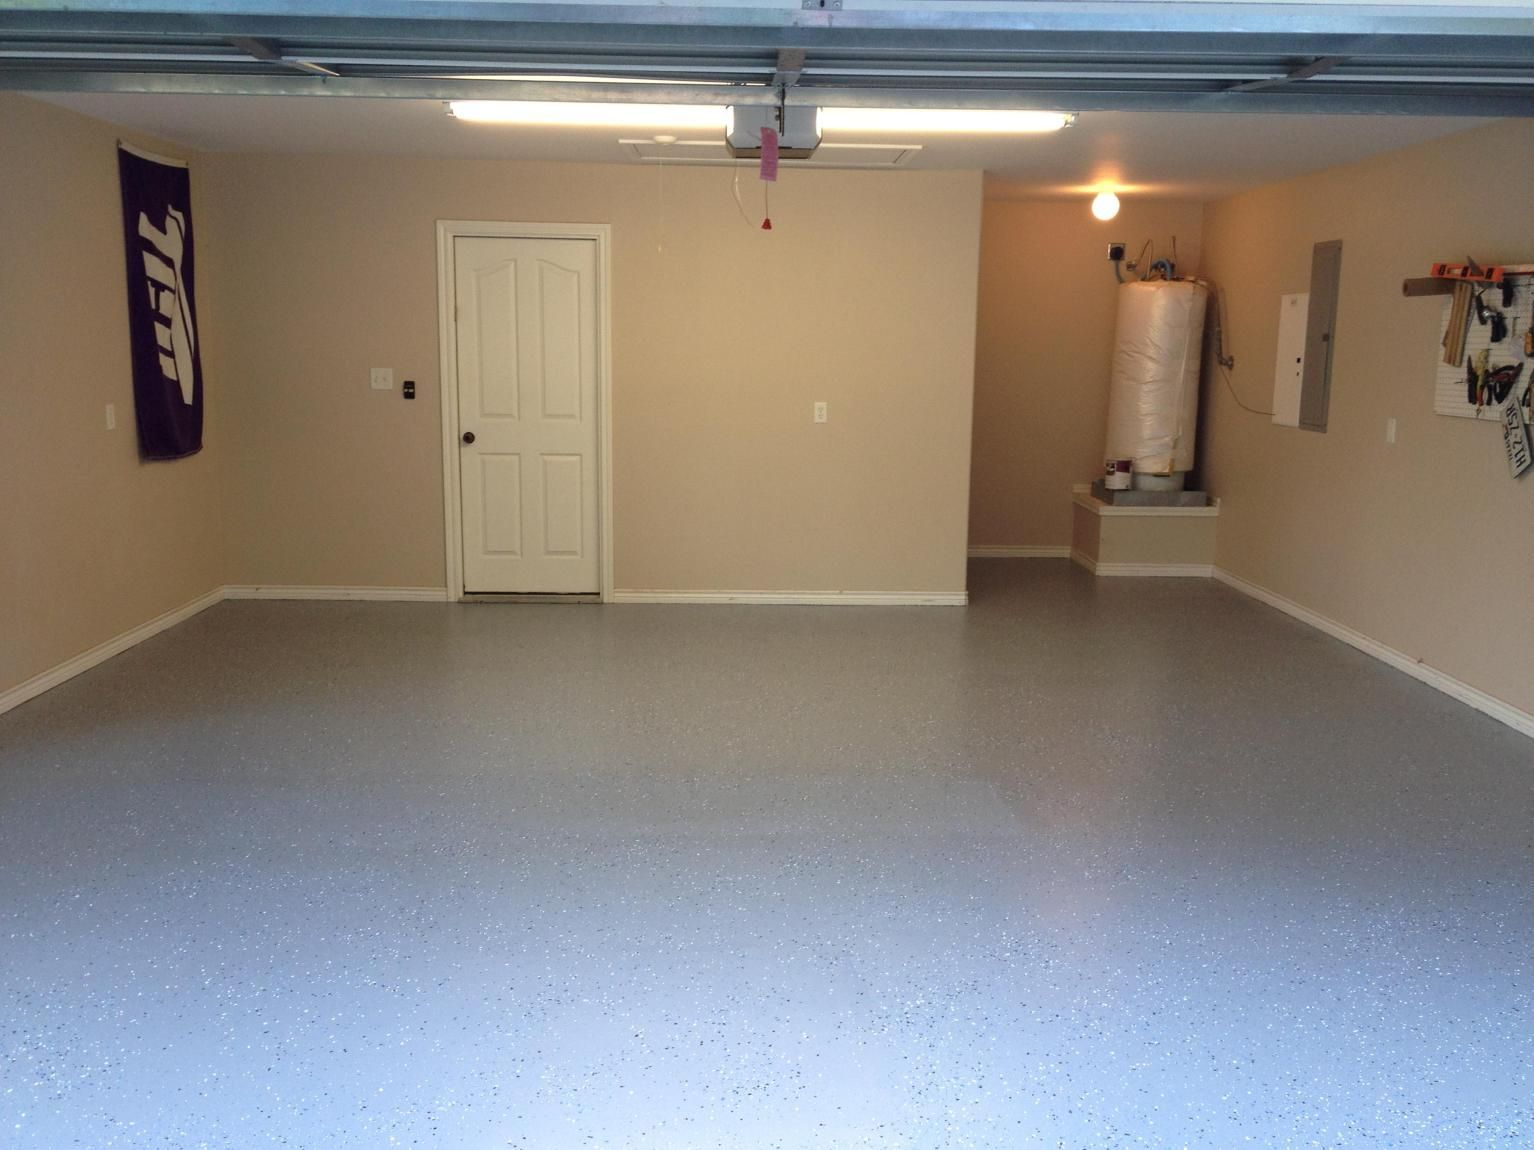 Garage Floor Paint In Basement 30 Perfect Basement Concrete Floor Paint Color Ideas Home